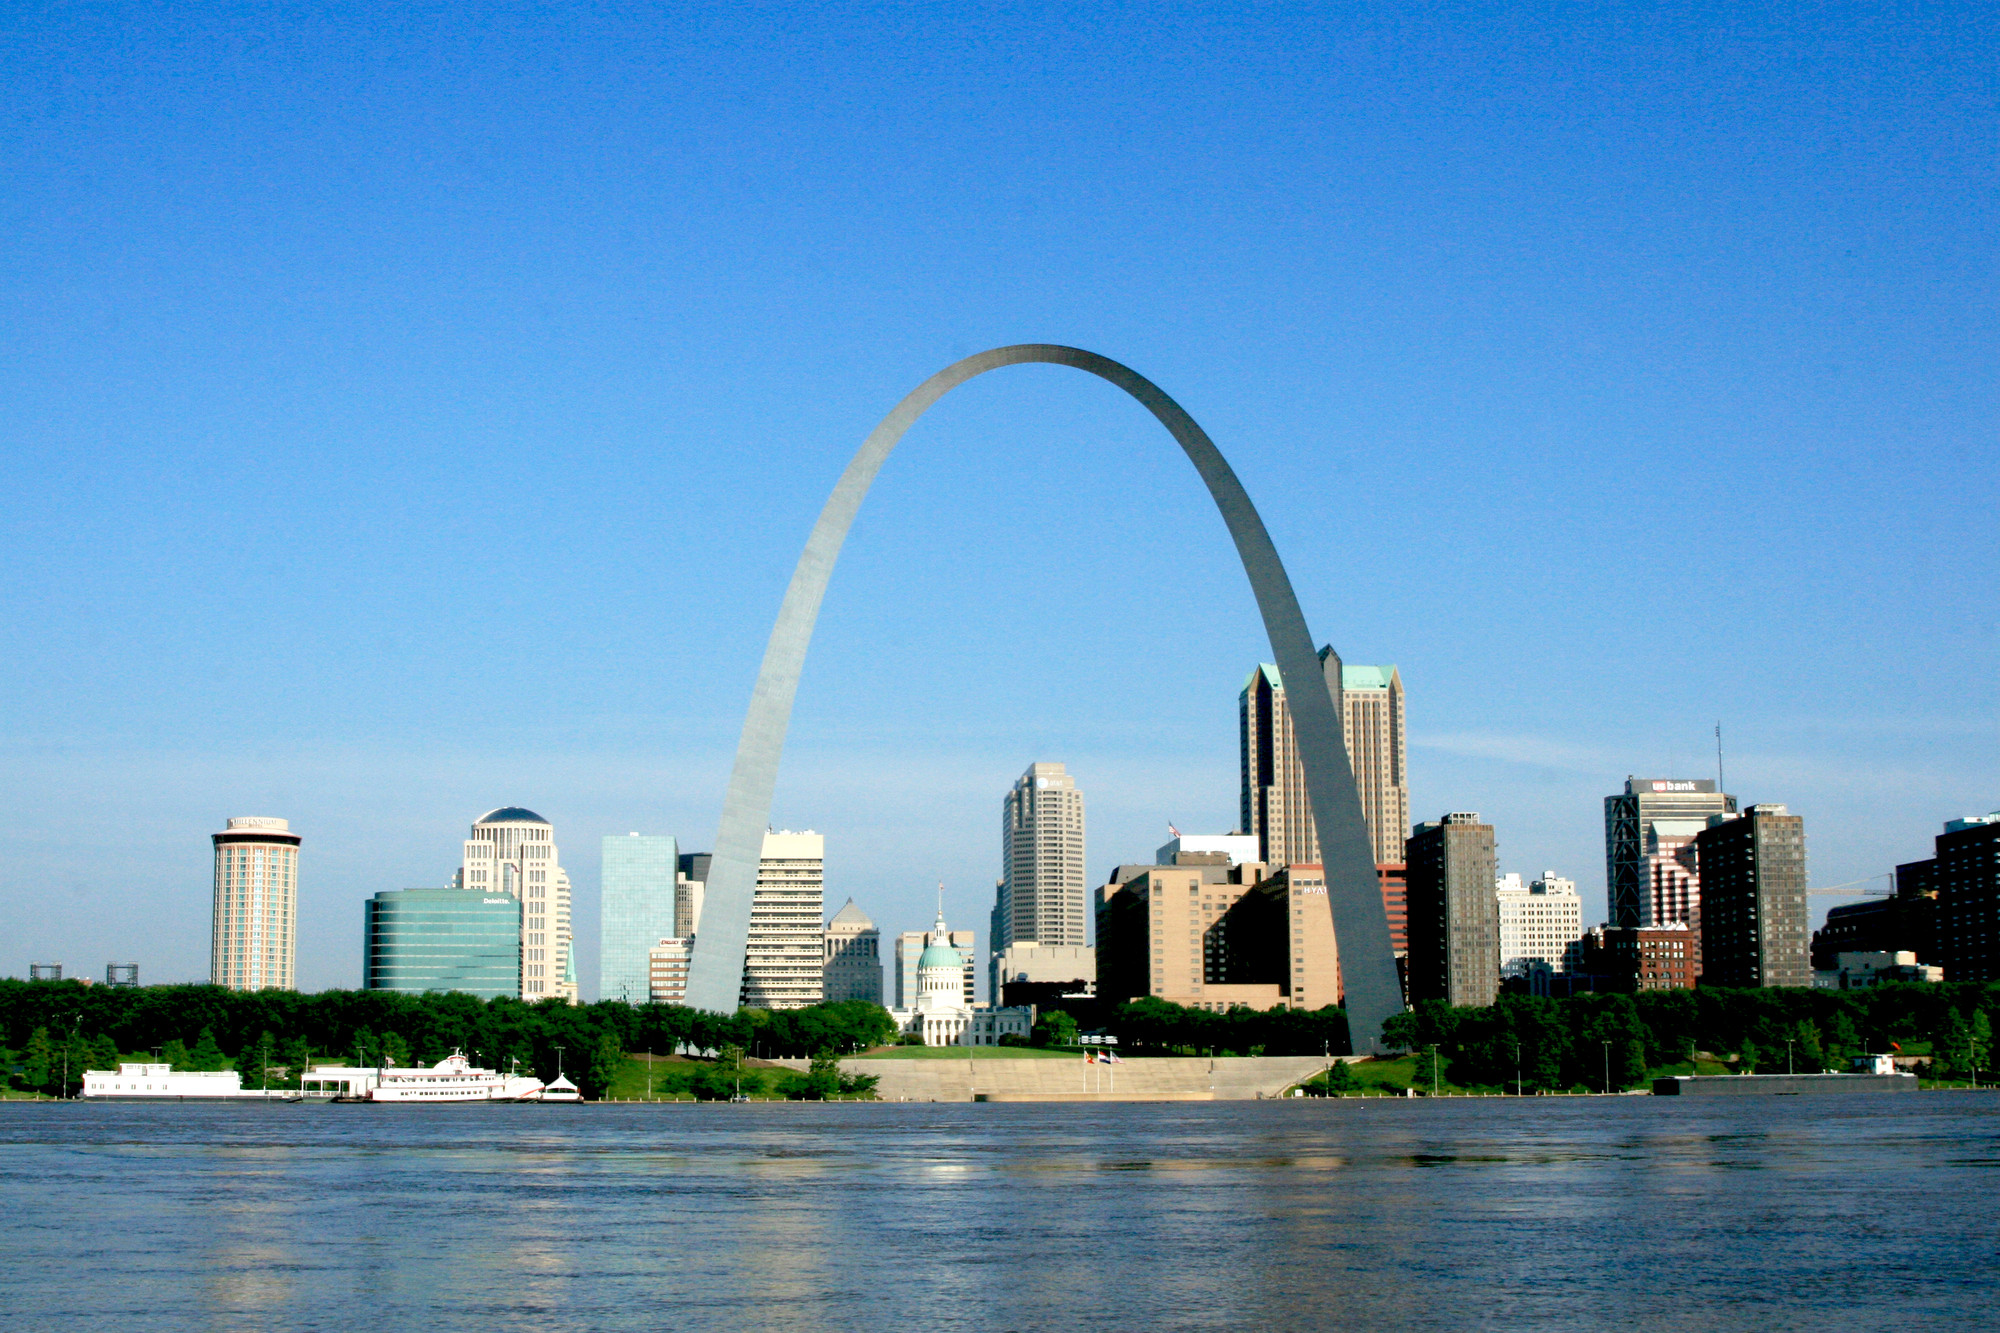 Prepossessing 10 Famous American Architecture Inspiration Of